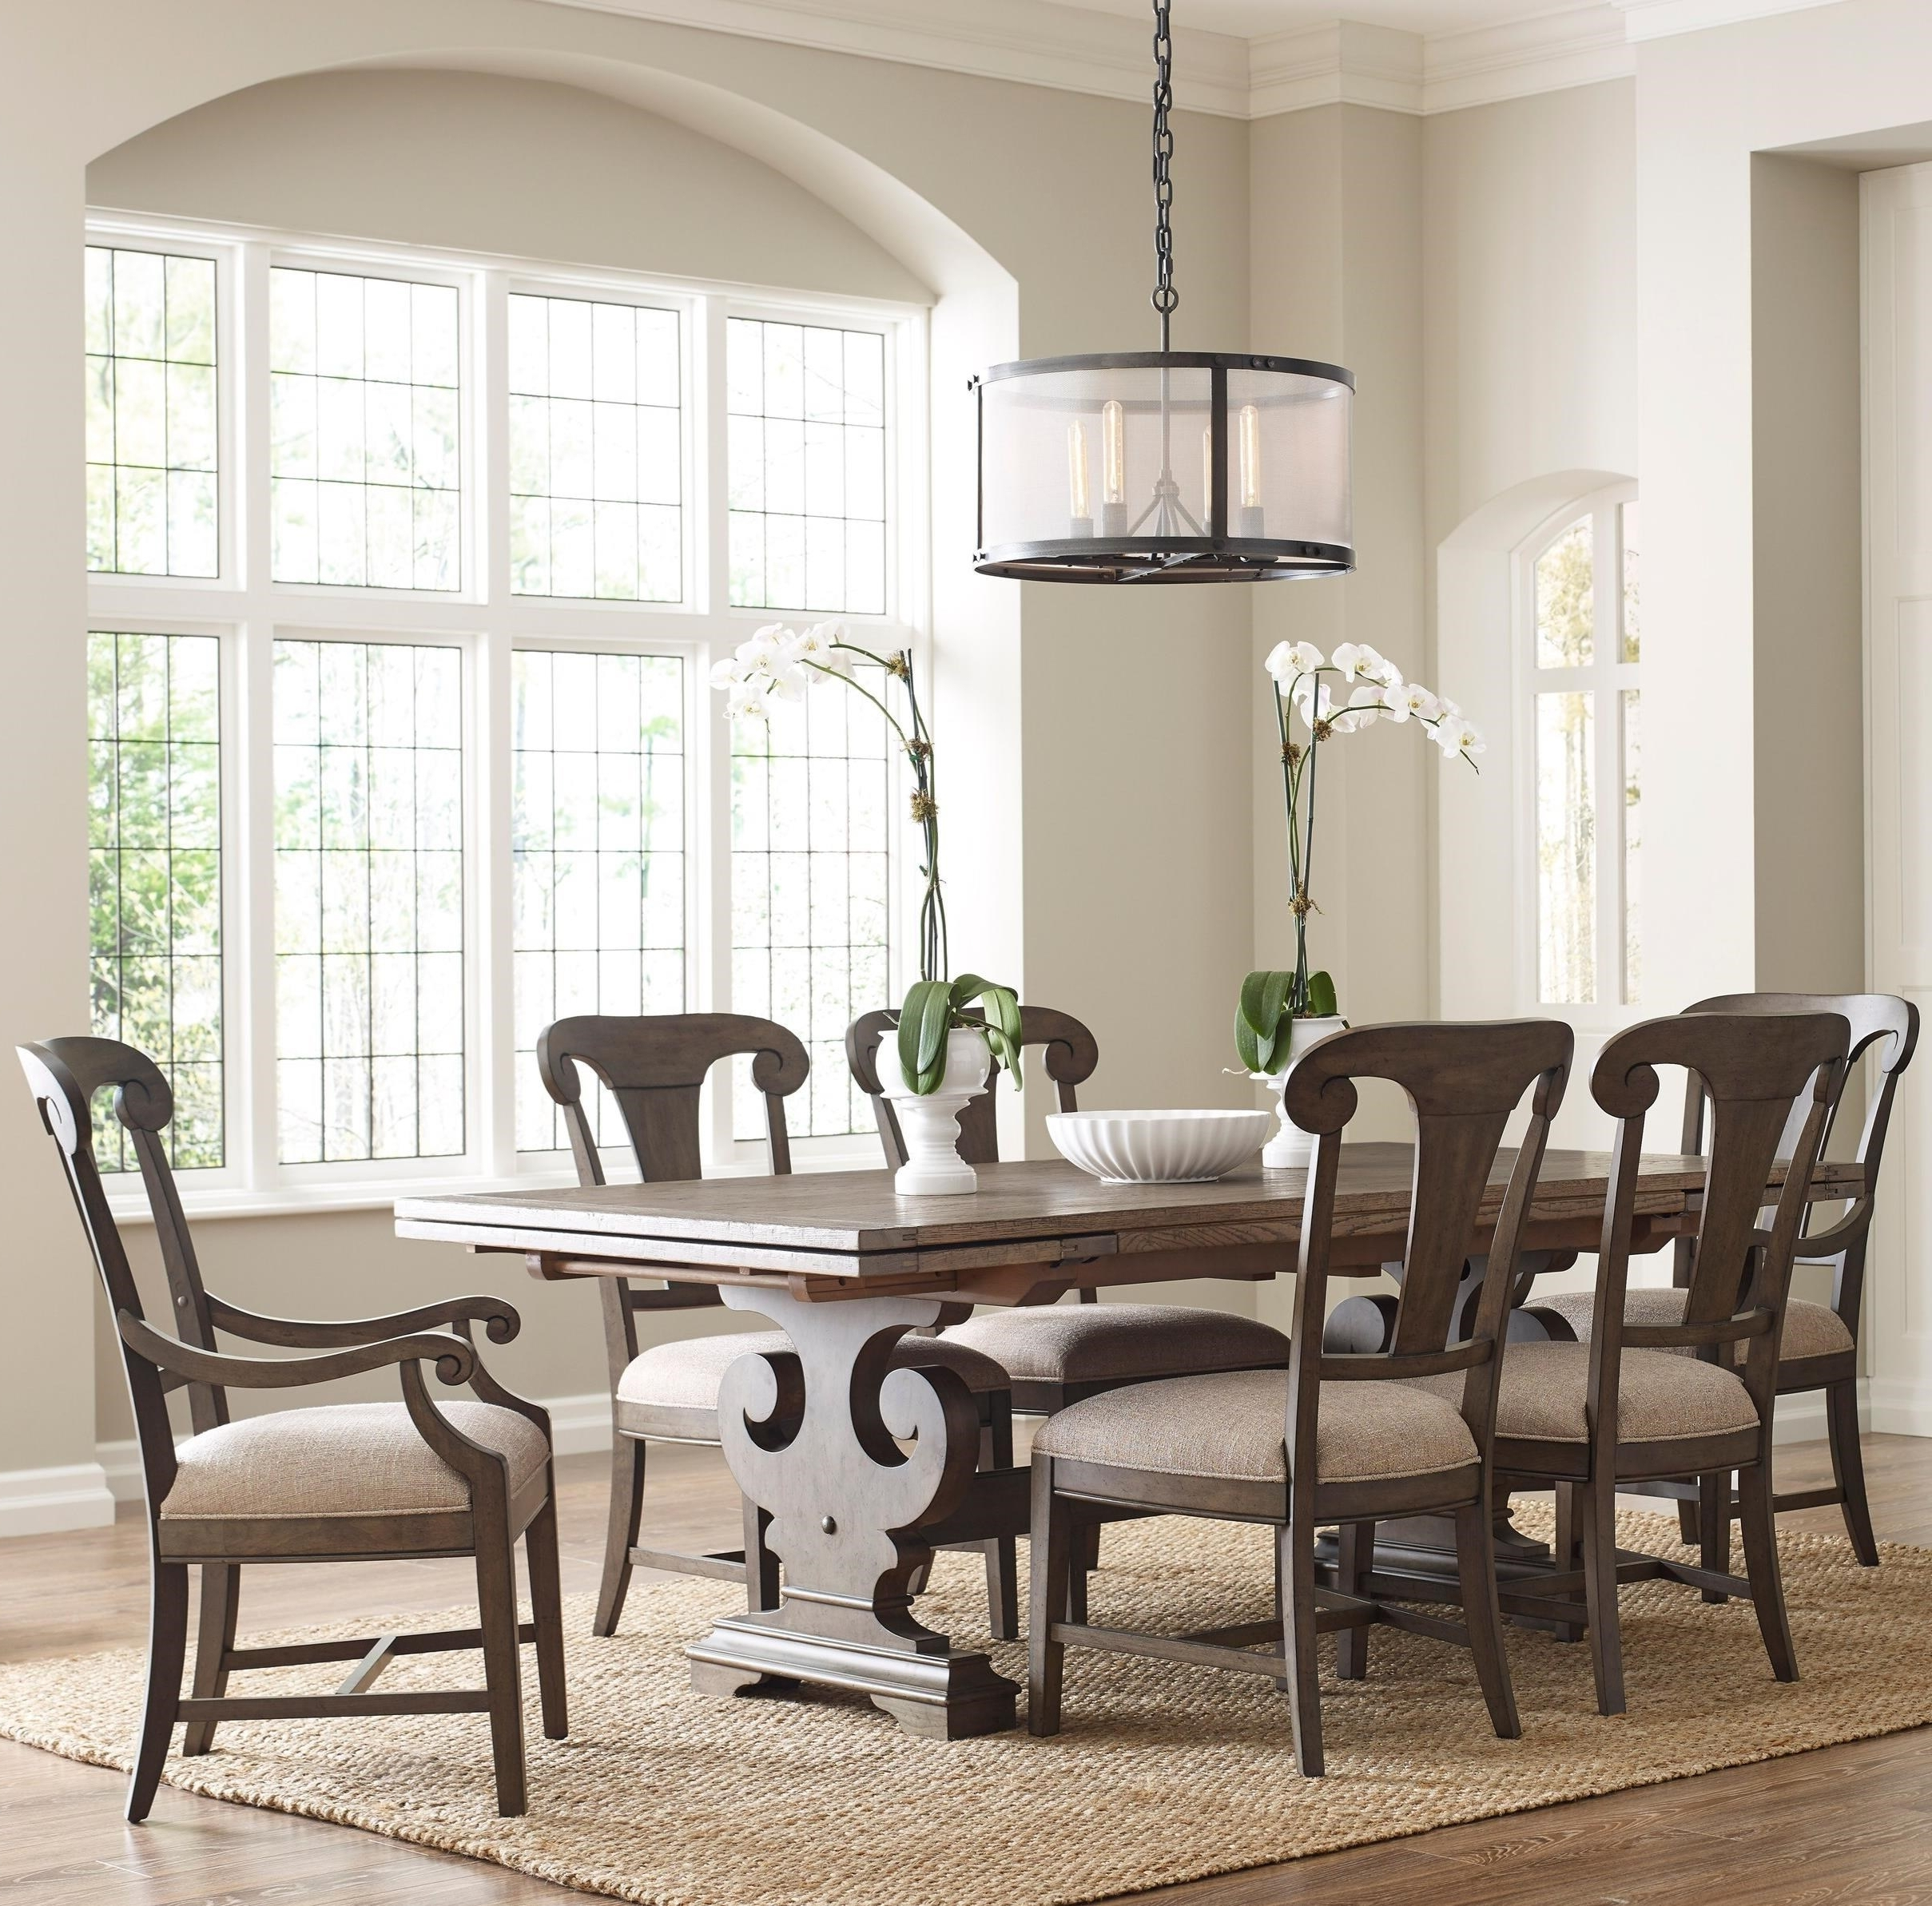 Crawford 7 Piece Rectangle Dining Sets With Regard To Latest Seven Piece Dining Set With Crawford Refectory Table And Fulton (View 11 of 25)